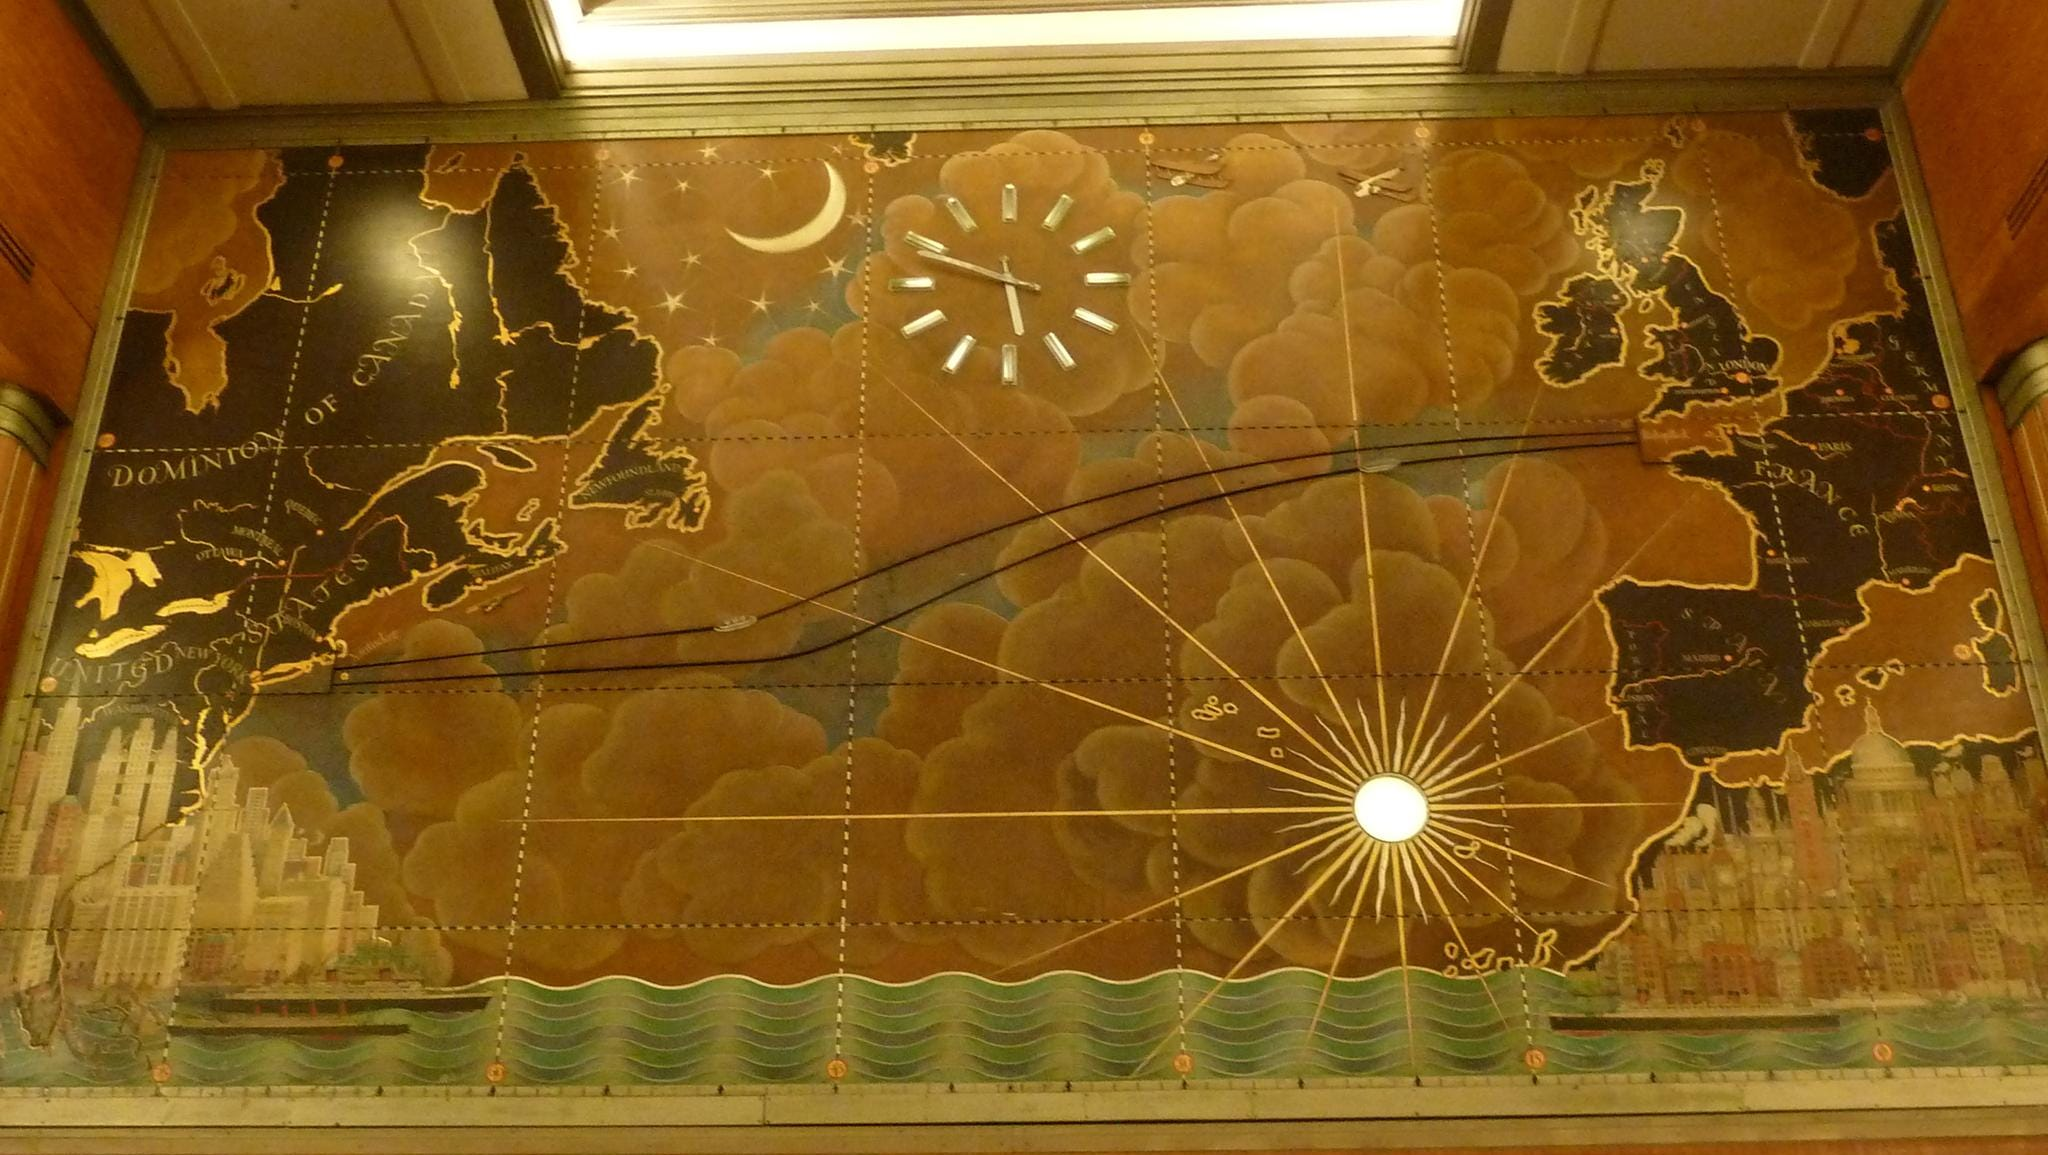 Macdonald Gill's famous trans-Atlantic mural on the forward bulkhead has been often imitated but never duplicated. Two crystal ships once traced the actual positions of the Queen Elizabeth and Queen Mary during their crossings.